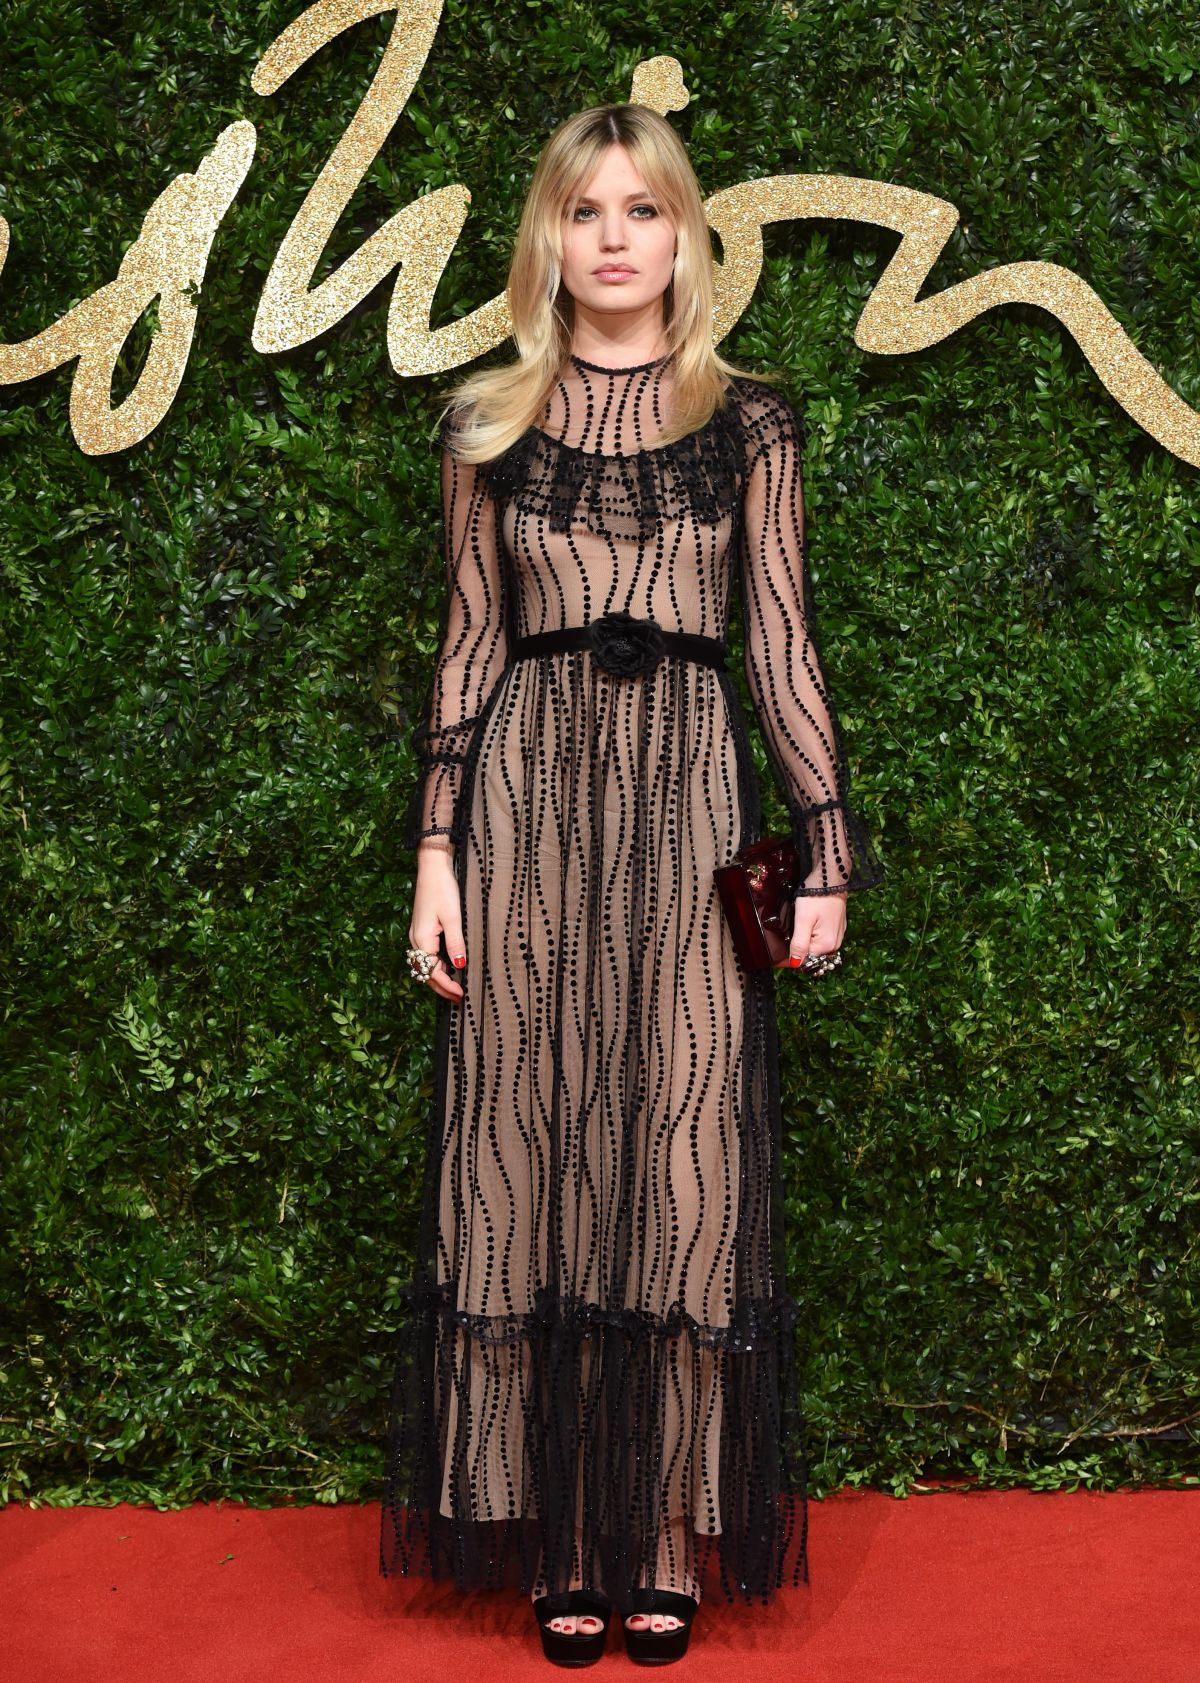 GEORGIA MAY JAGGER at 2015 British Fashion Awards in London 11/23/2015